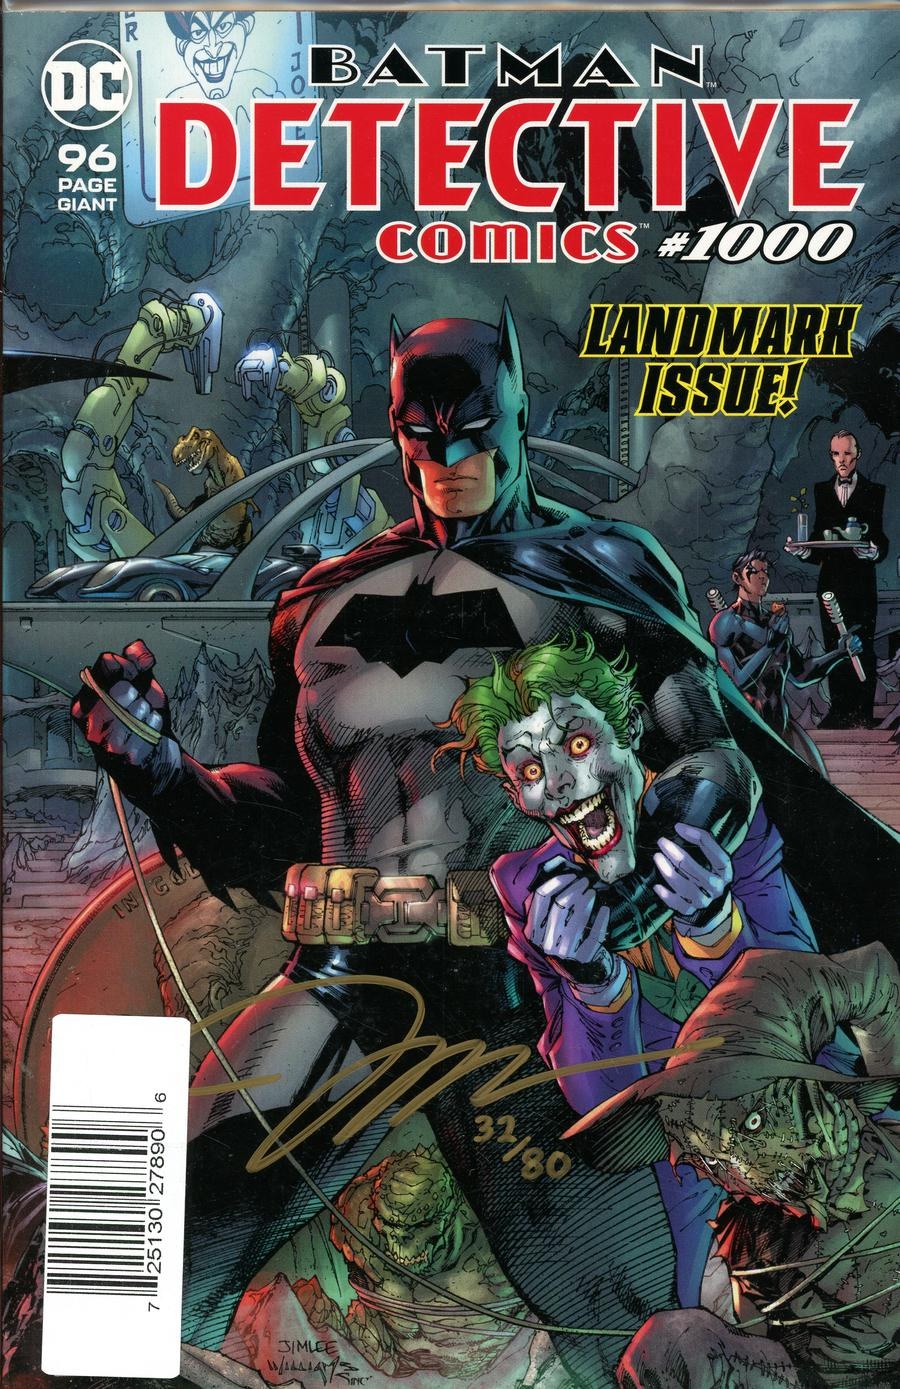 Detective Comics Vol 2 #1000 Cover T DF Gold Signature Series Signed By Jim Lee